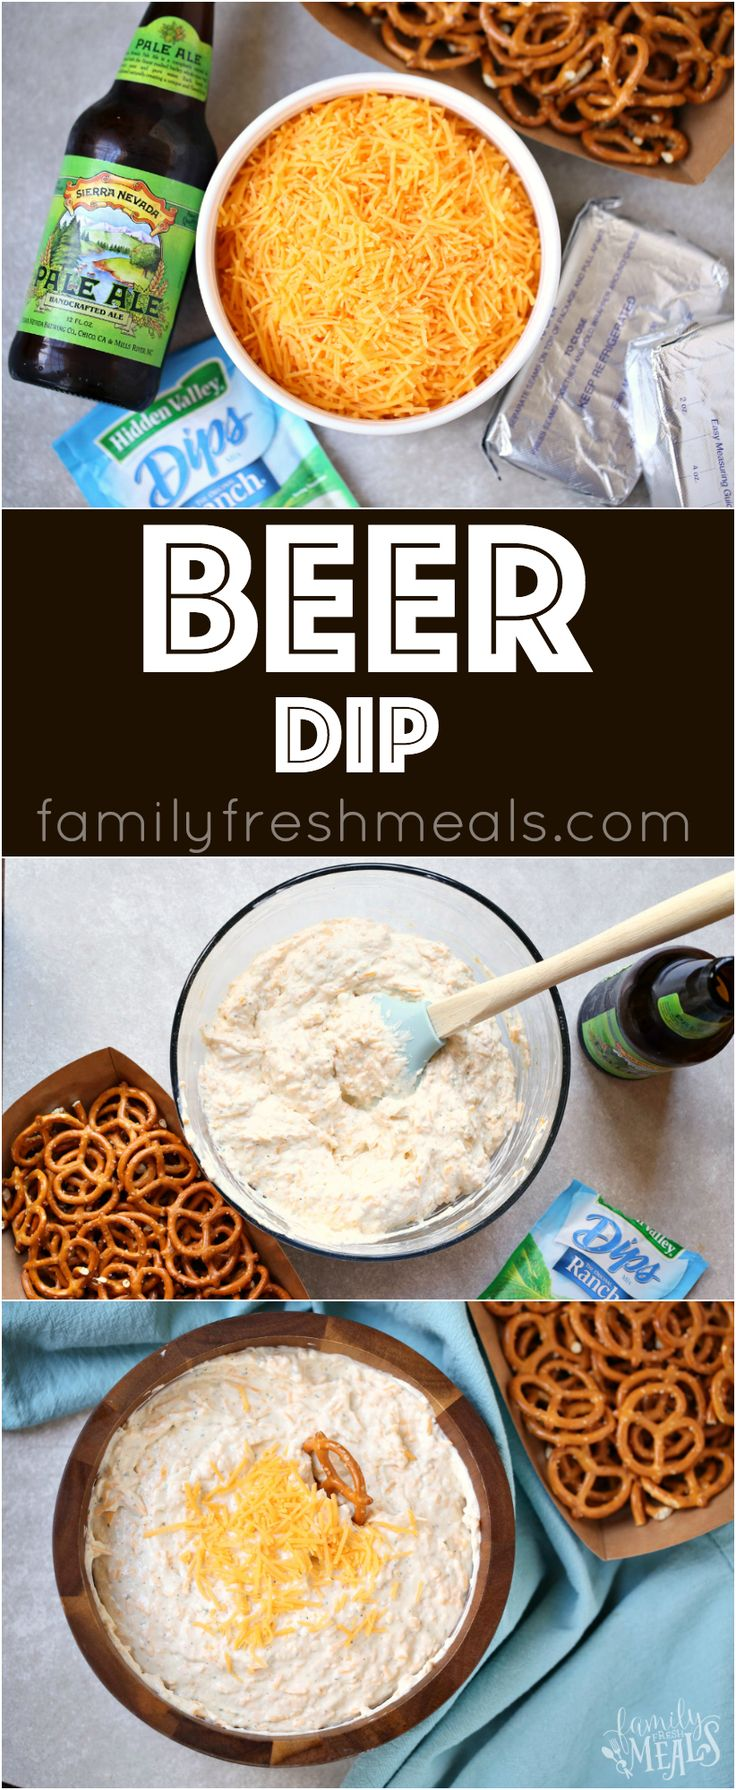 ... images about Recipes With Beer on Pinterest | Cheddar, Bacon and Chili